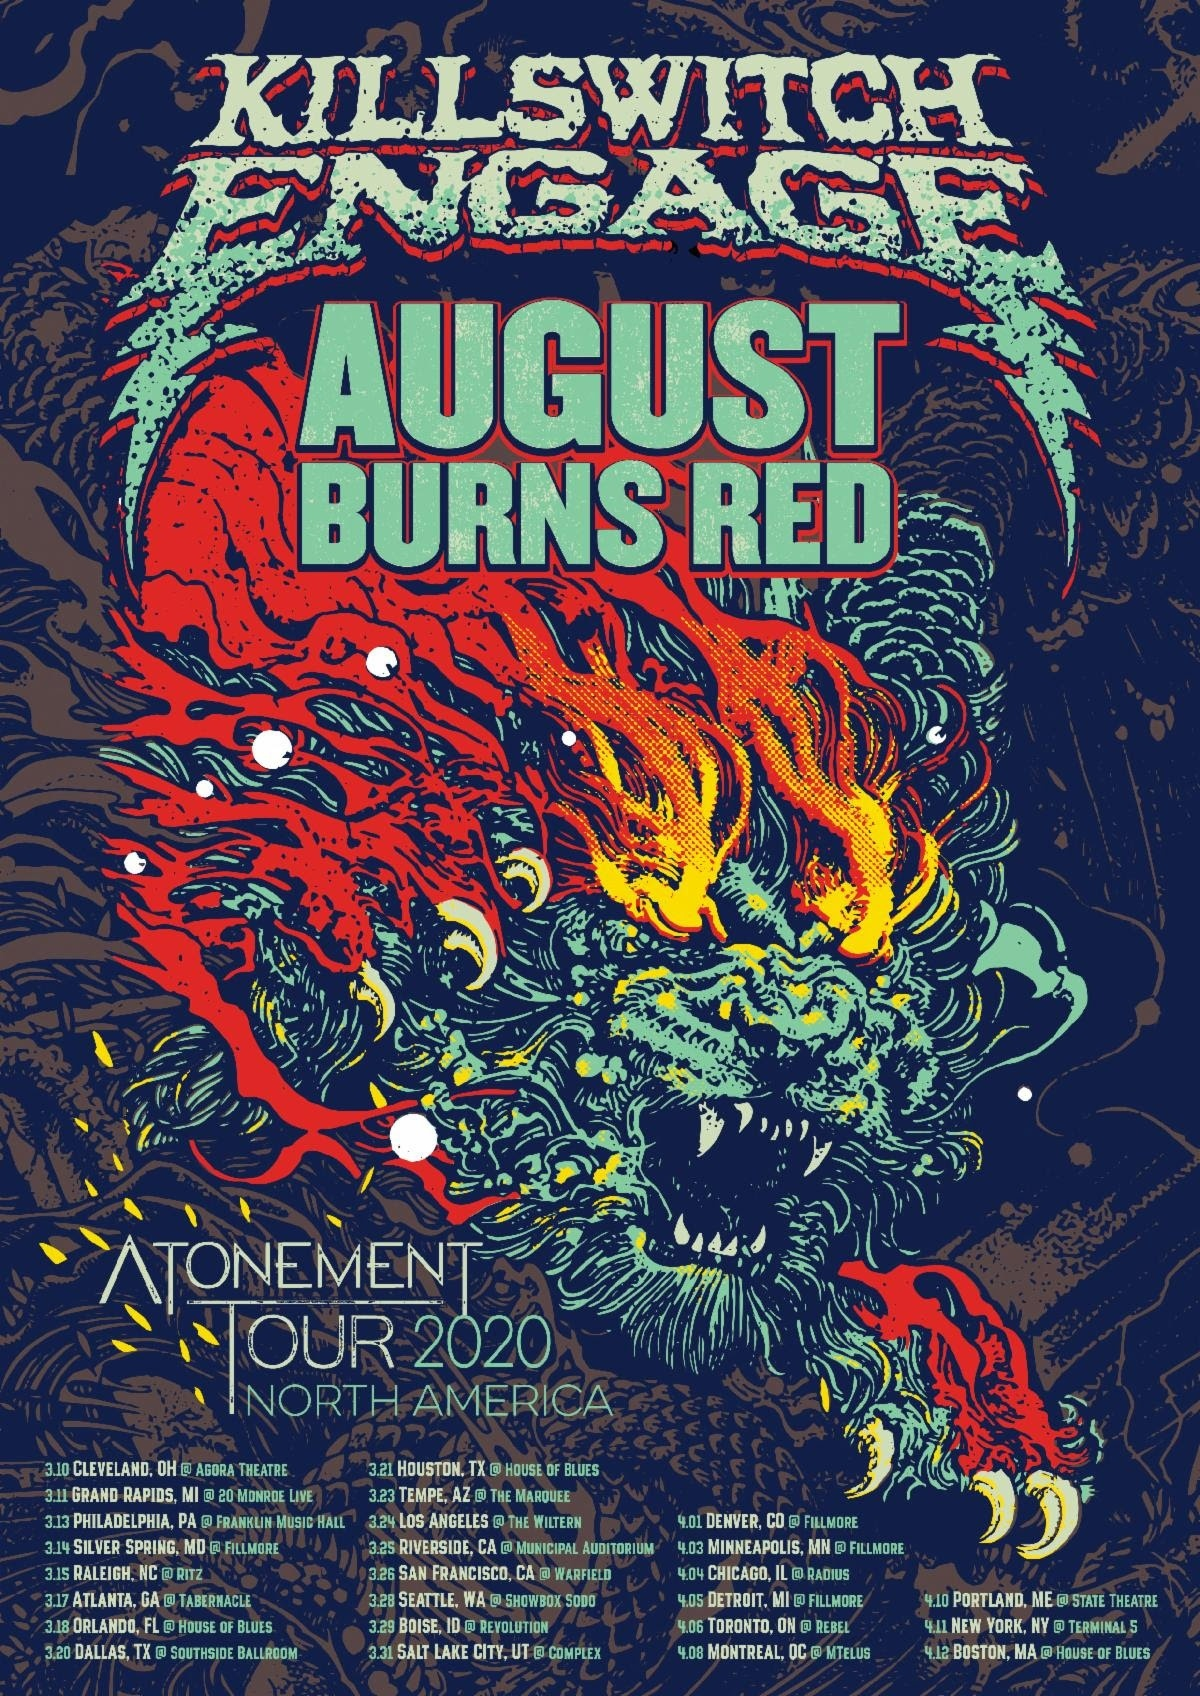 Killswitch Engage Announces Spring 2020 North American Tour With August Burns Red Opening